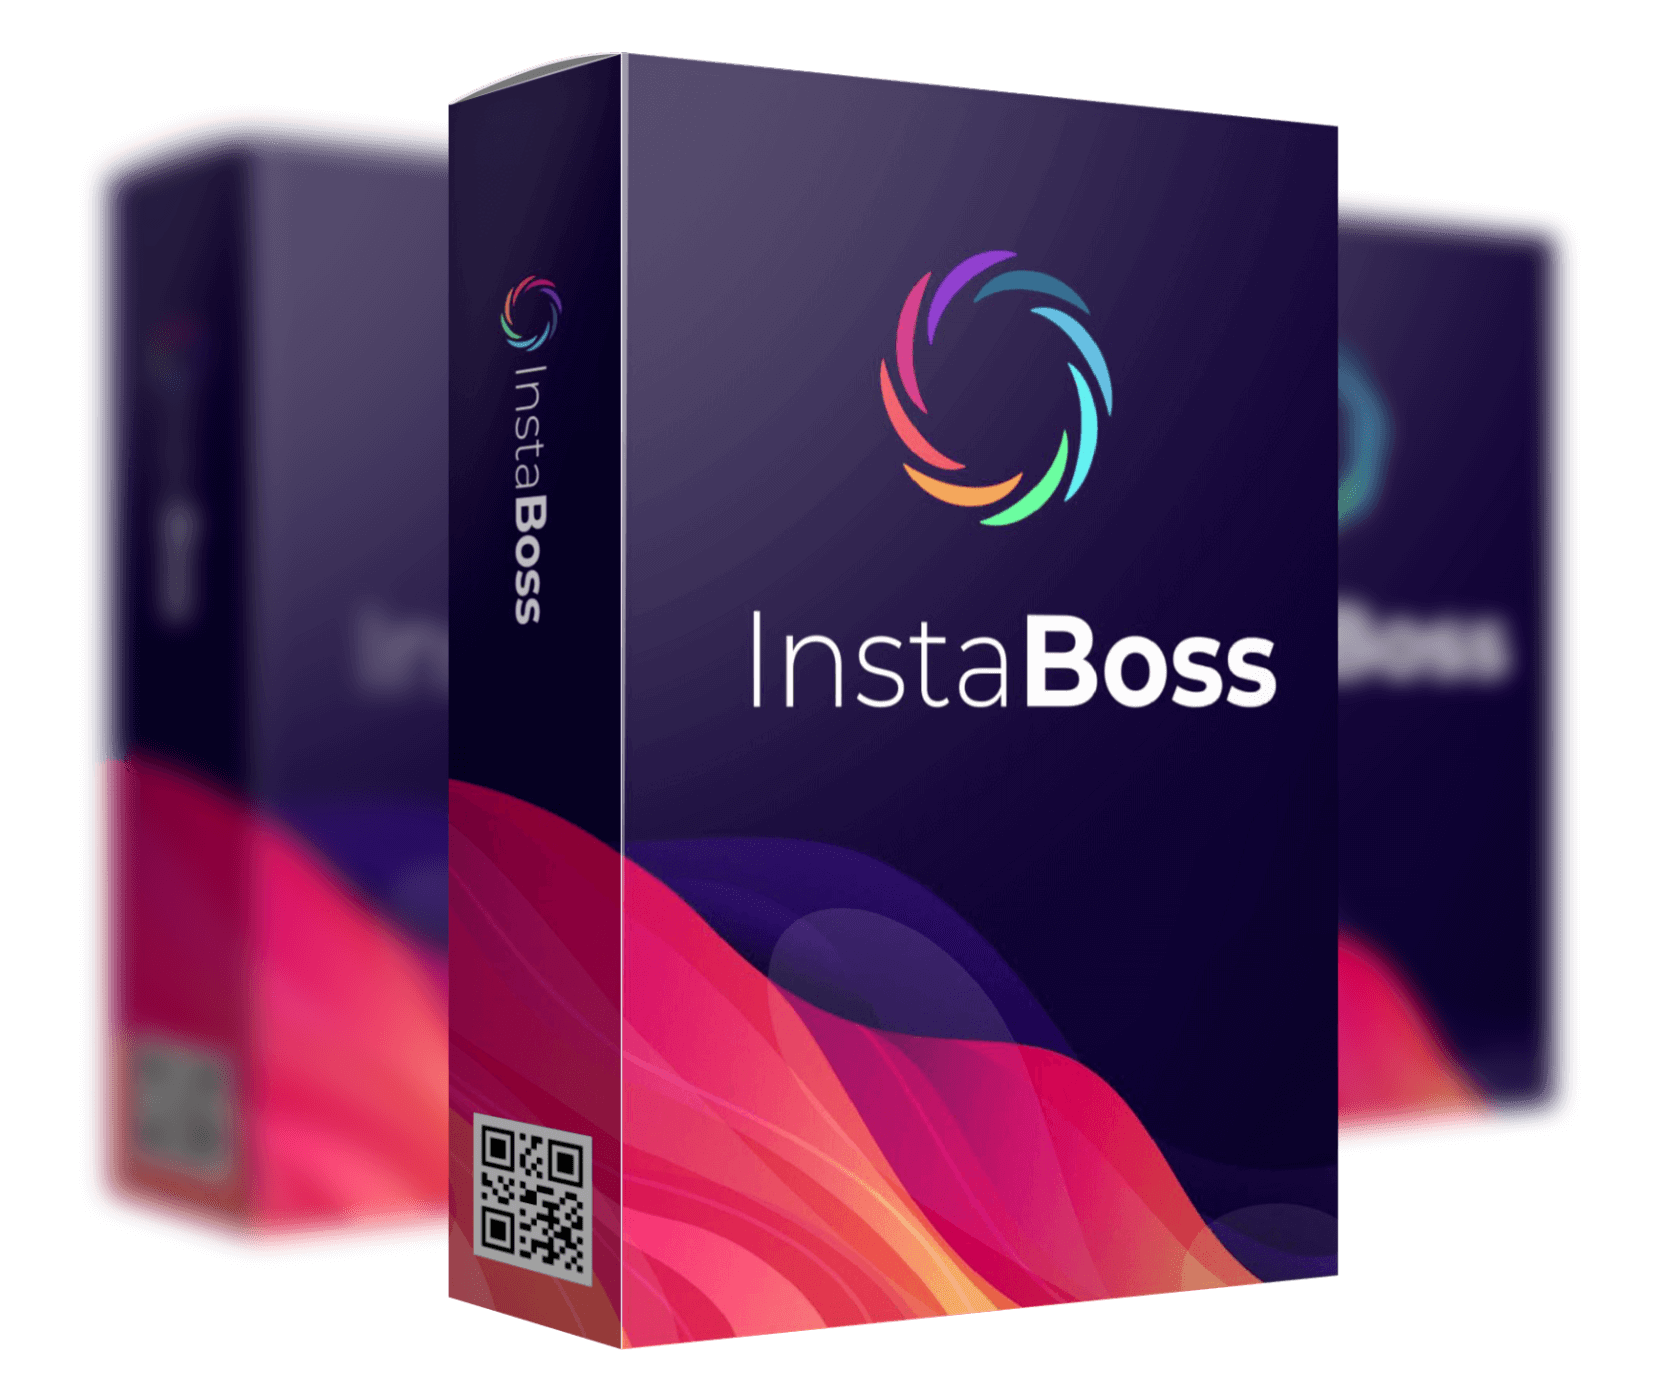 Instaboss-box-review-demo